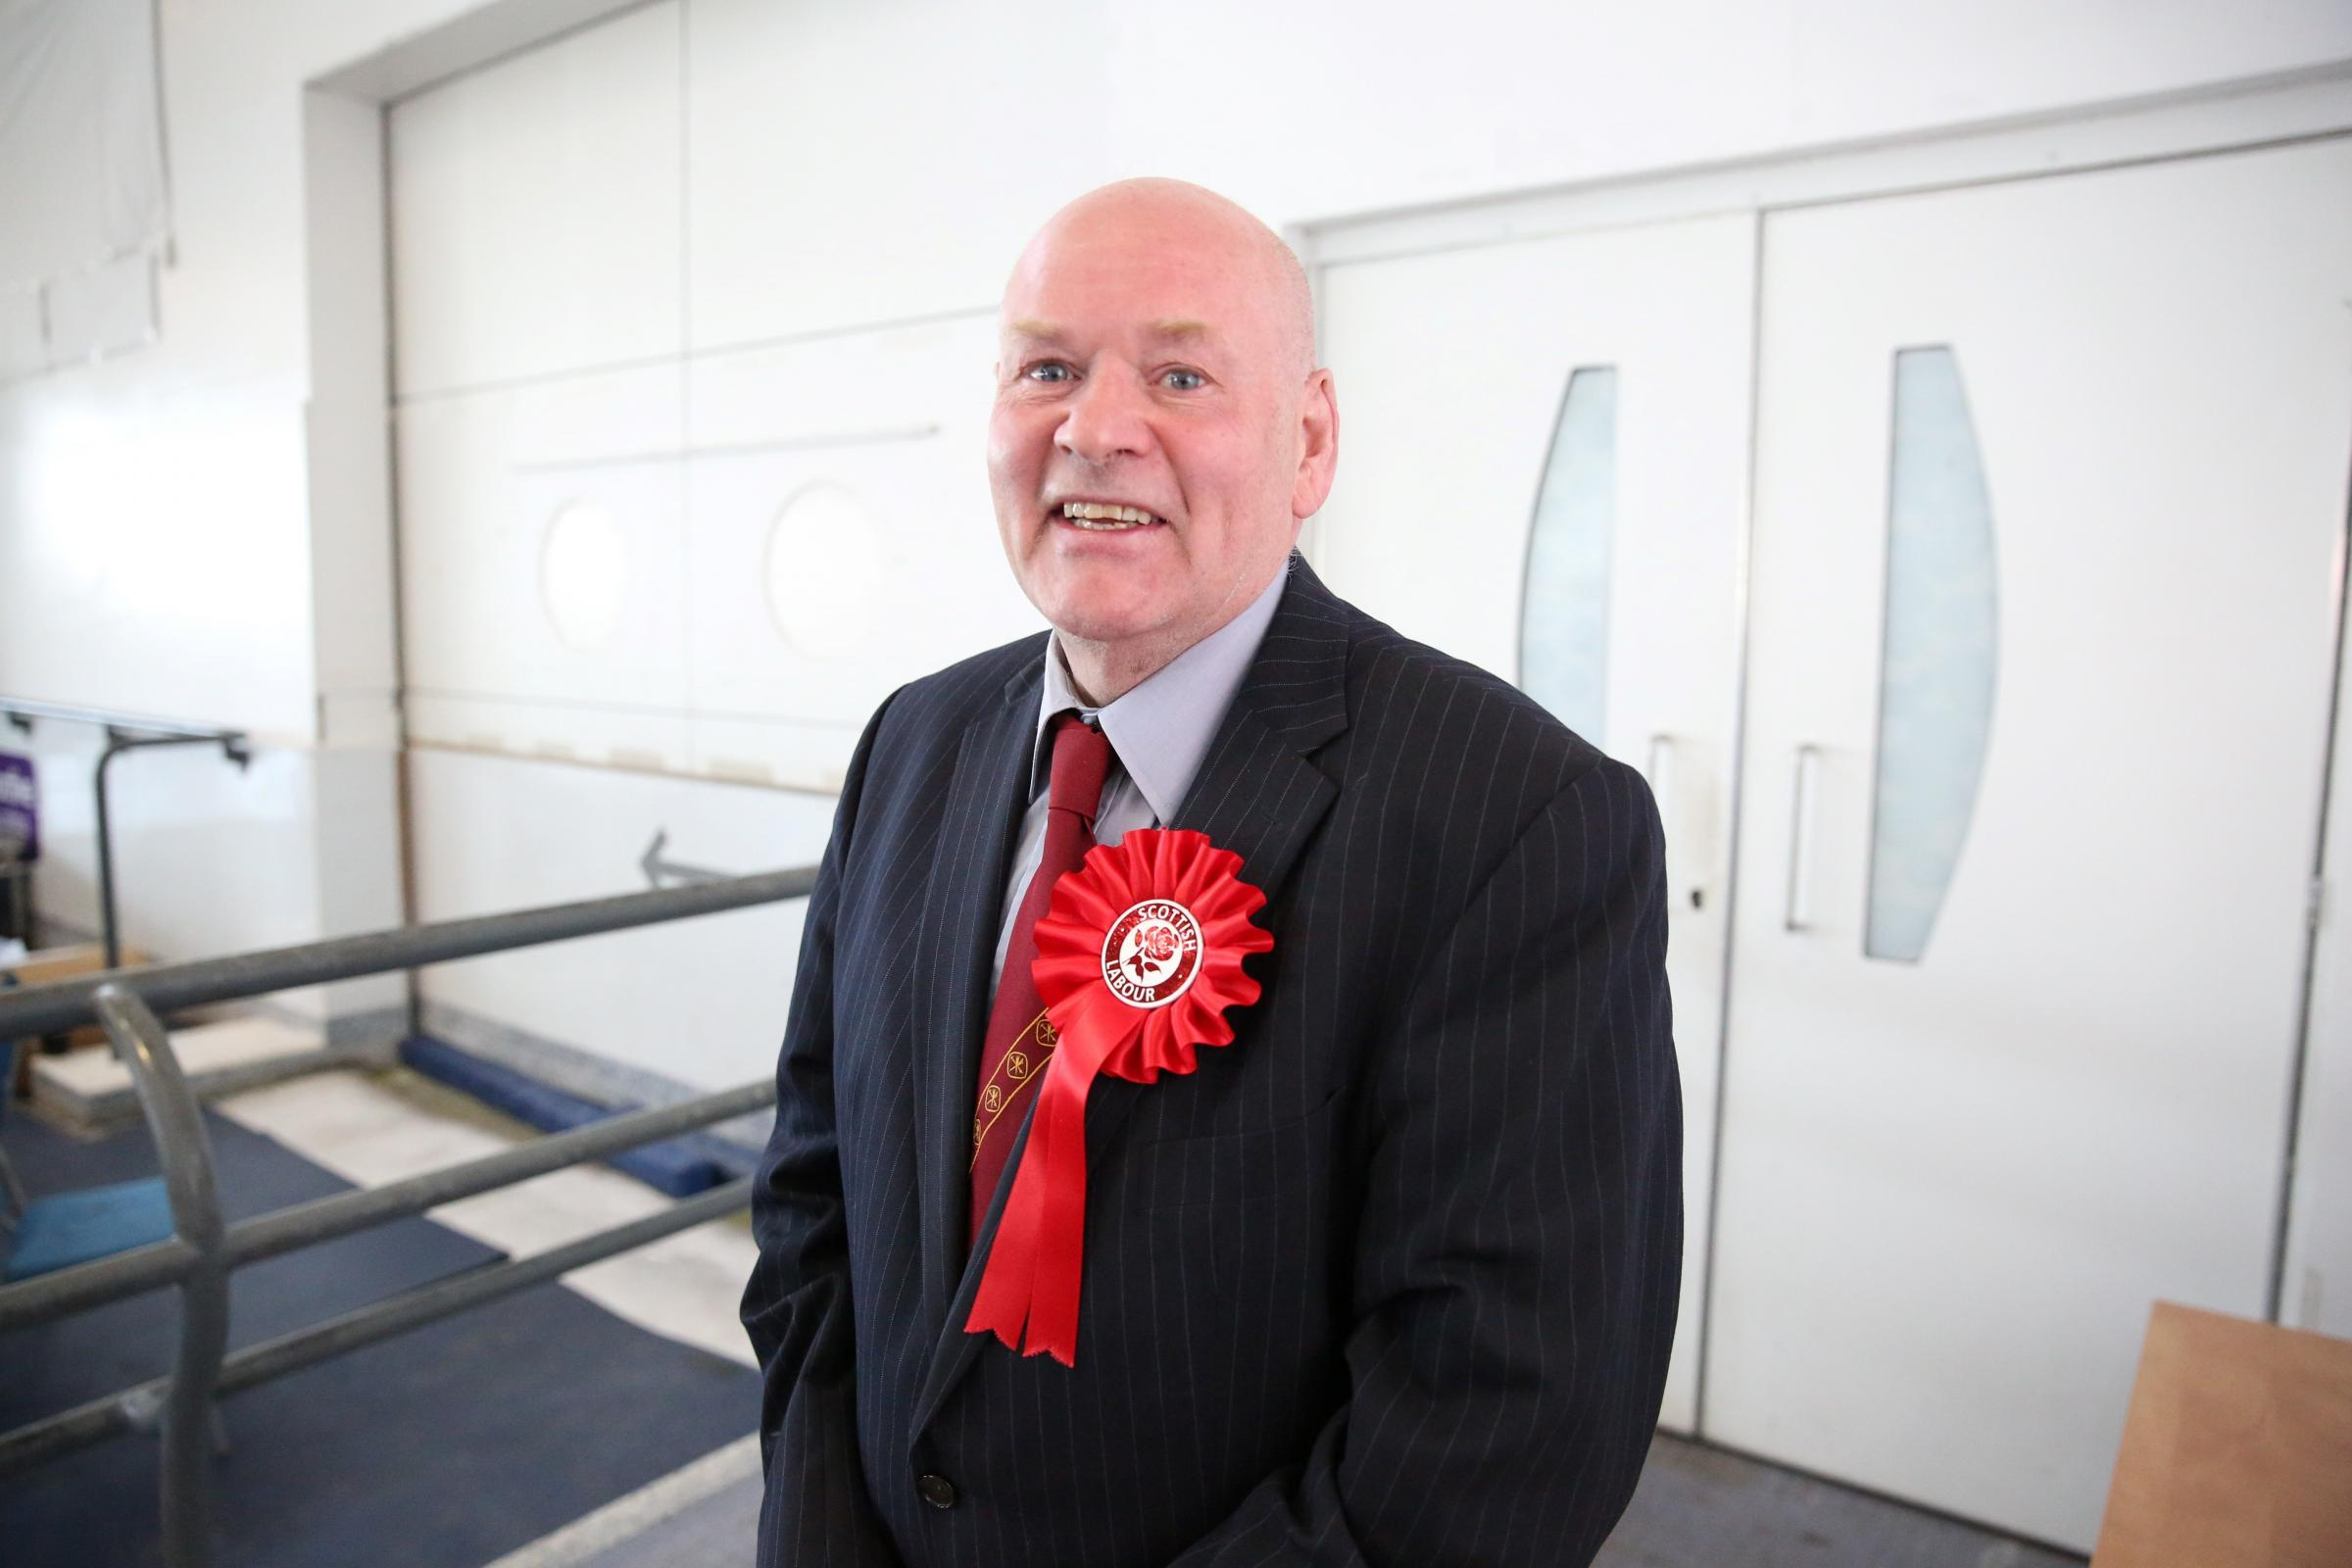 Inverclyde Council election count at the Waterfront Leisure Complex in Greenock. Labour councillor Robert Moran was re-elected.